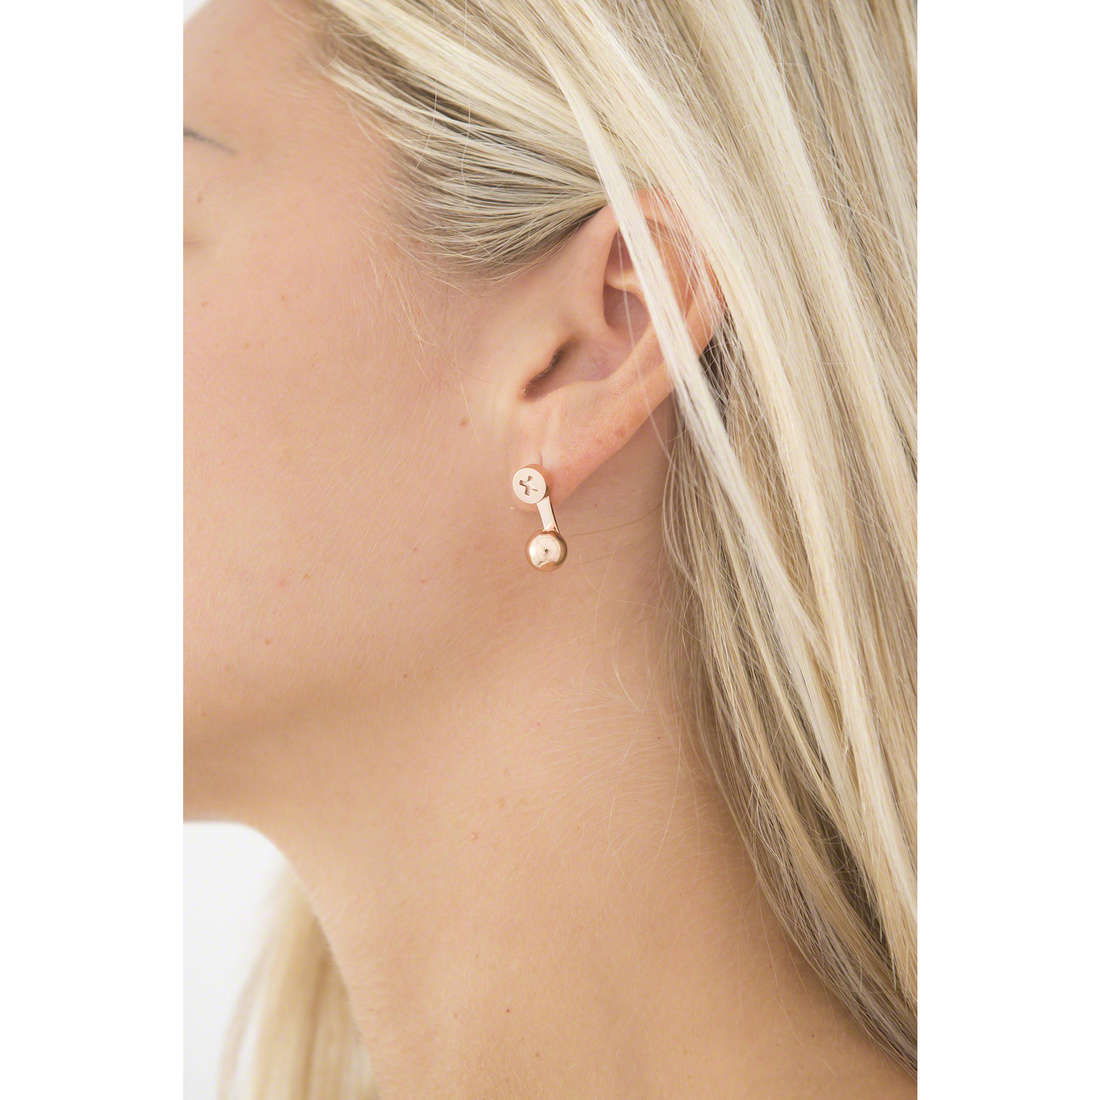 Emporio Armani earrings woman EGS2242221 indosso